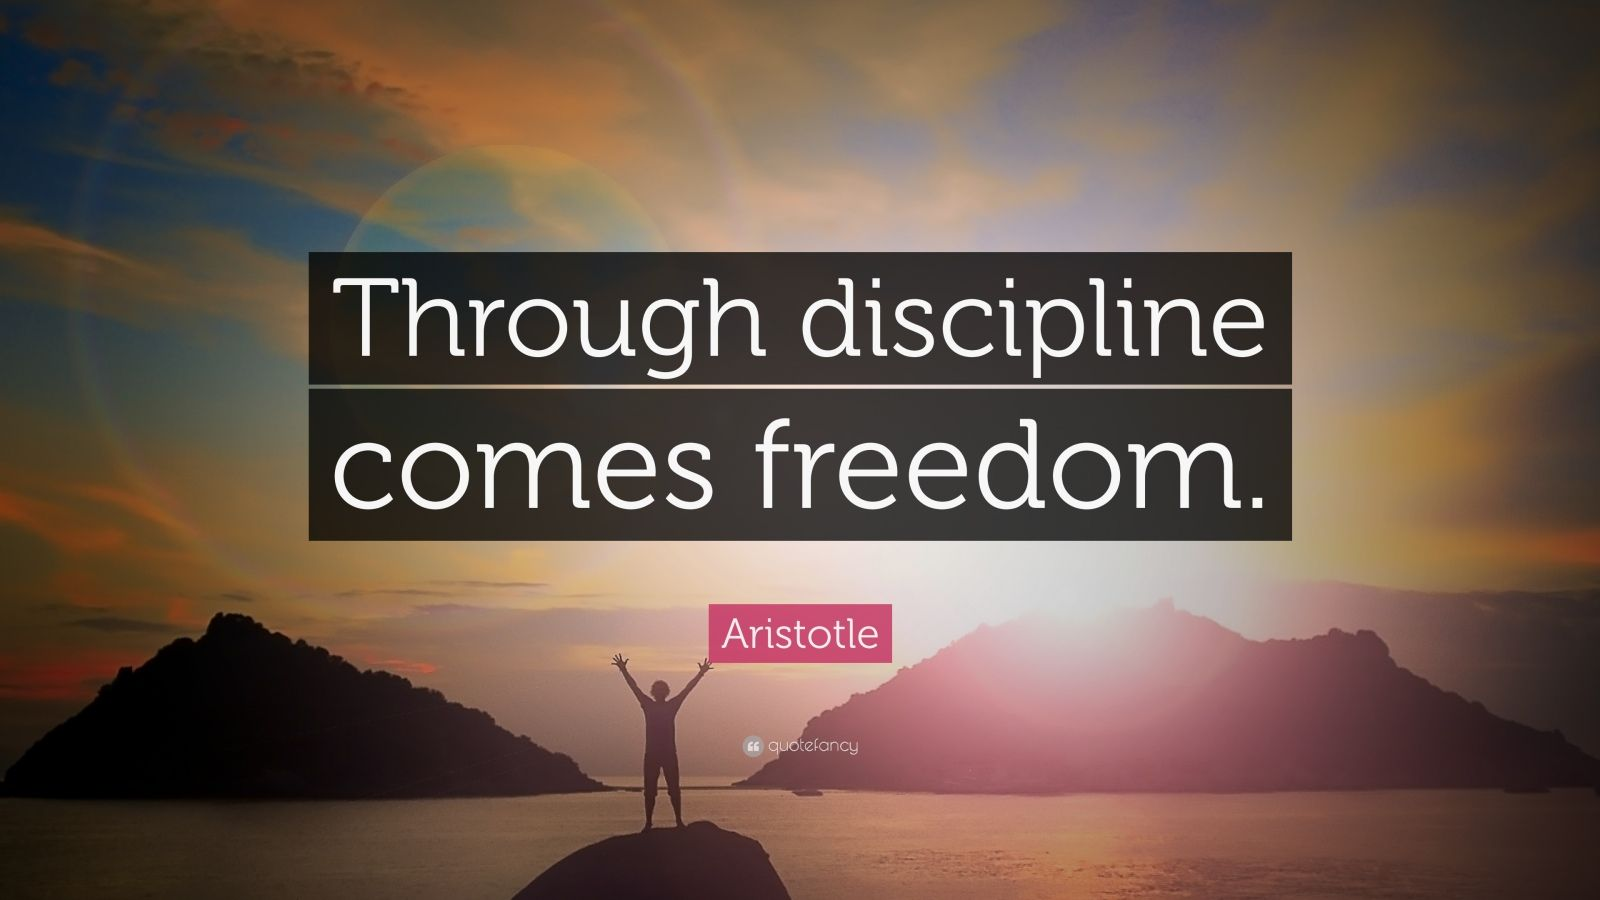 aristotle quote   u201cthrough discipline comes freedom  u201d  33